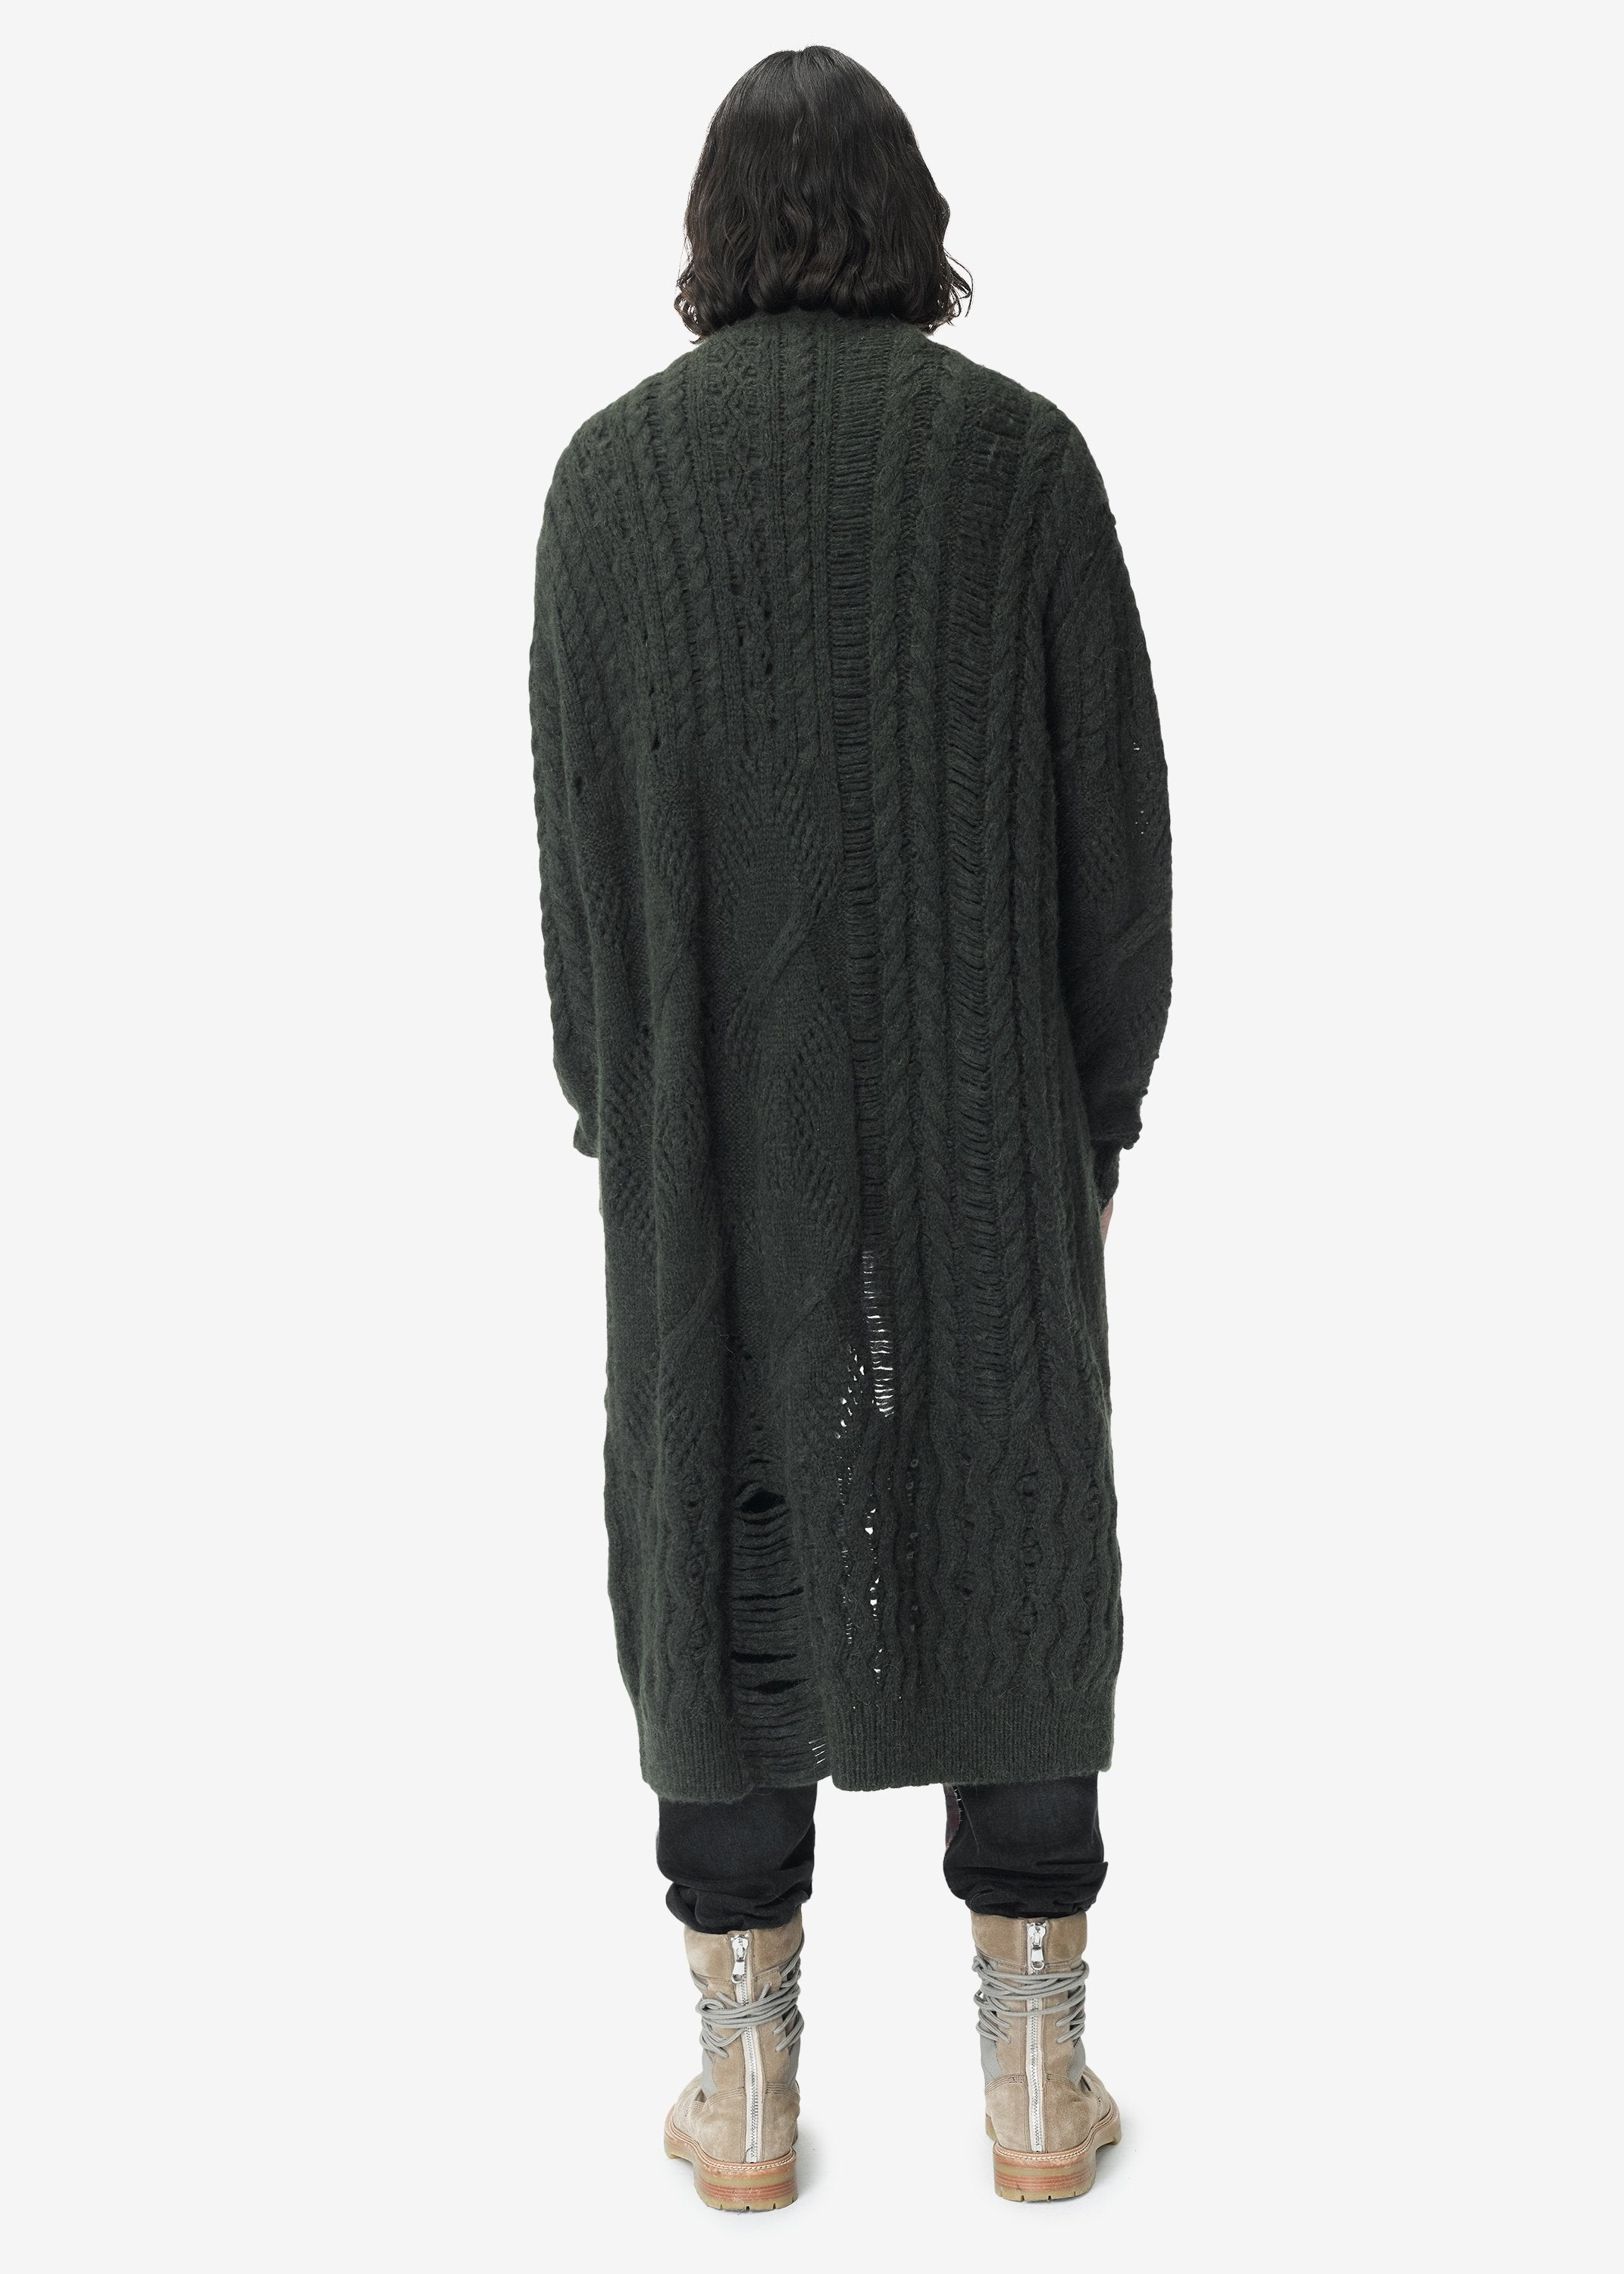 oversized-multipoint-cardigan-military-green-image-5